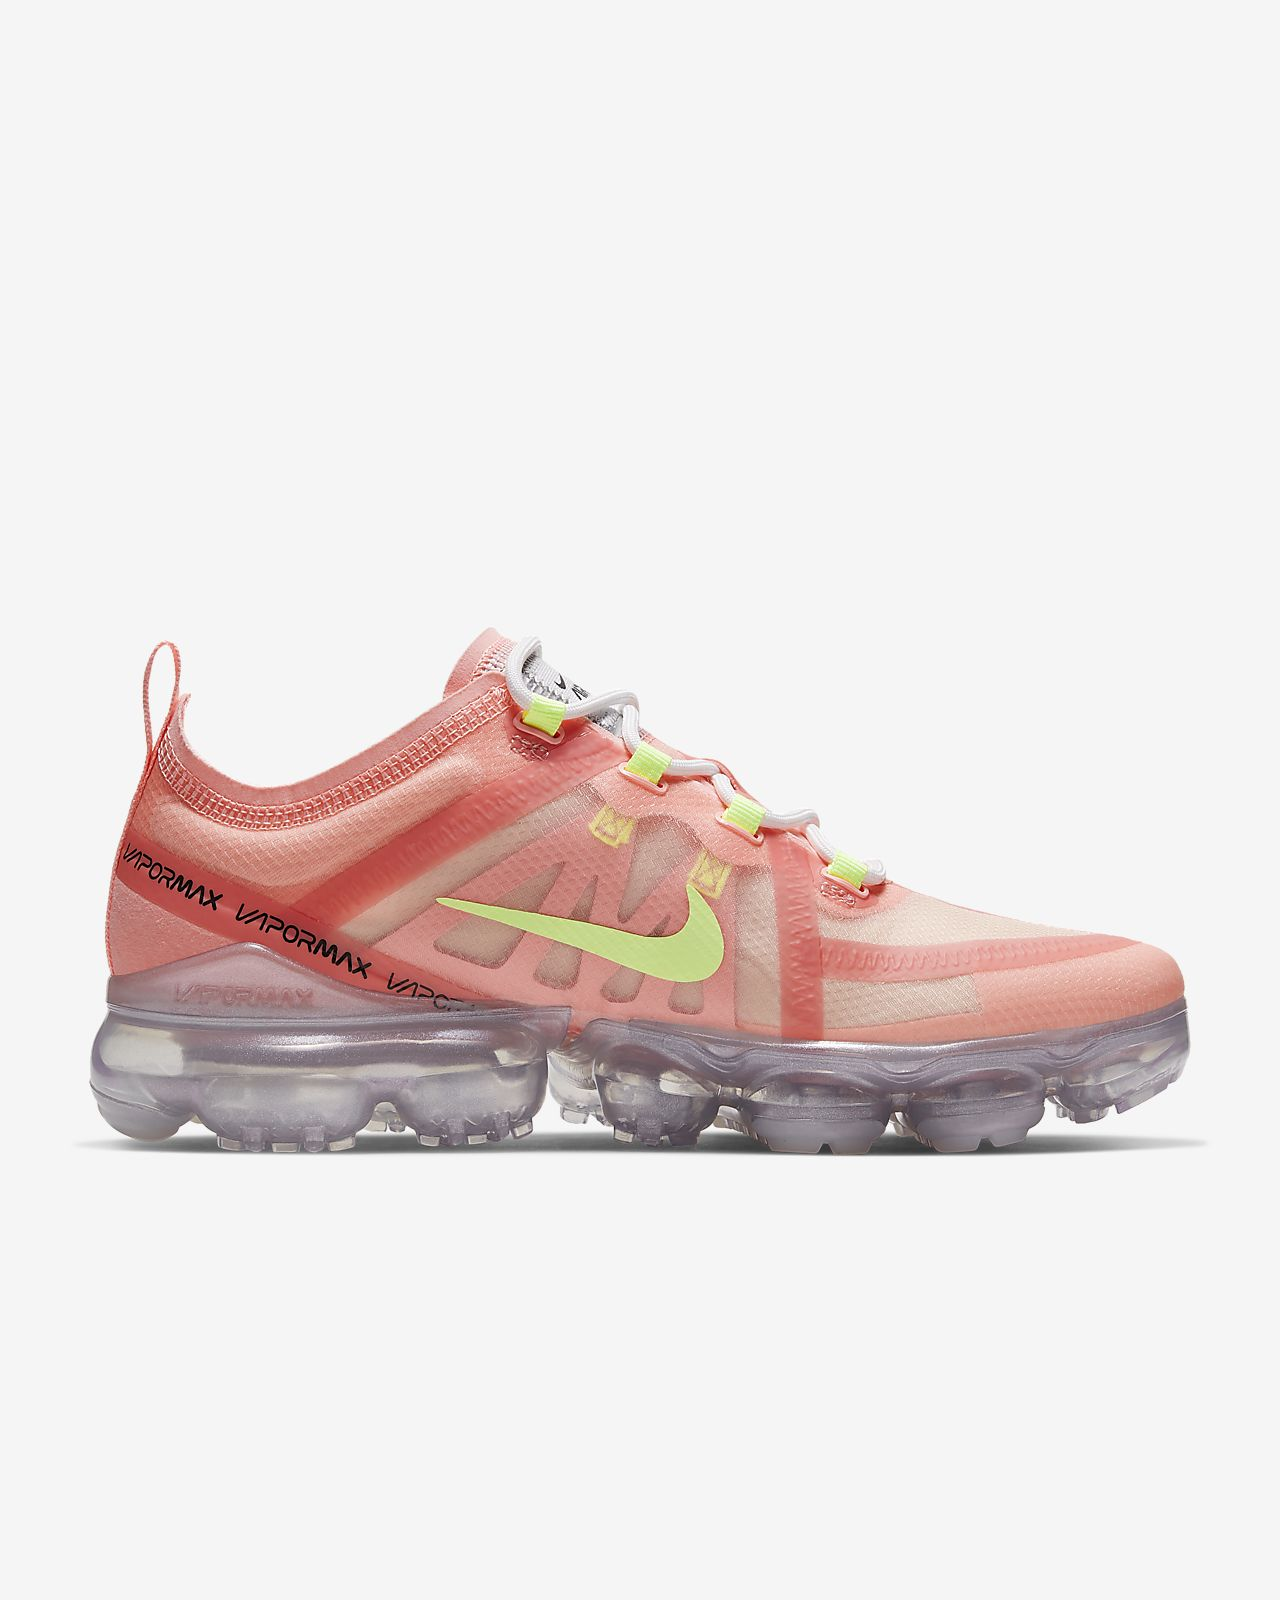 lowest price ccb79 41f70 ... Chaussure Nike Air VaporMax 2019 pour Femme